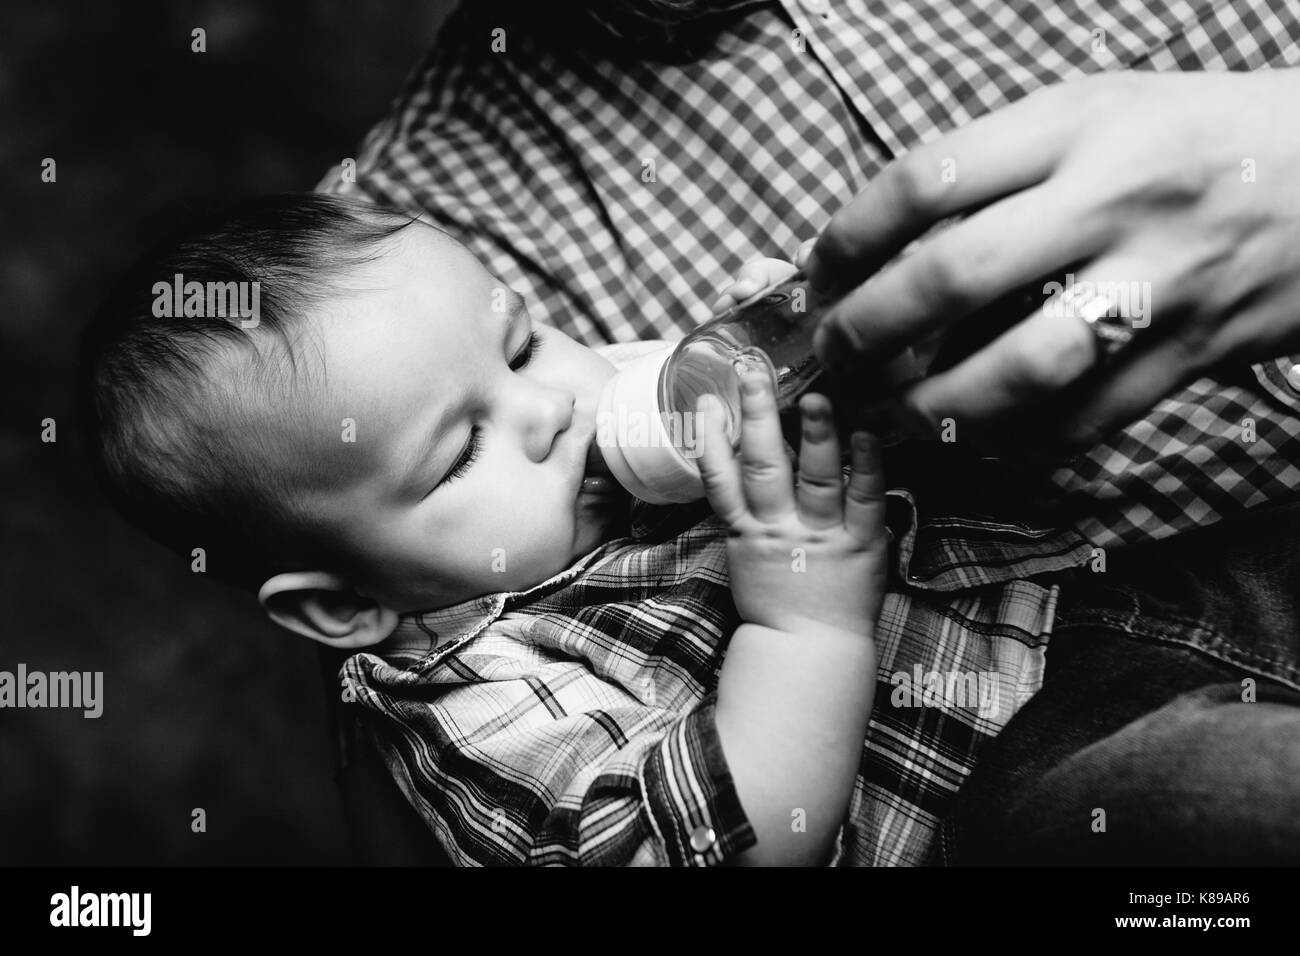 father's hand holding baby boy eating from the bottle - Stock Image